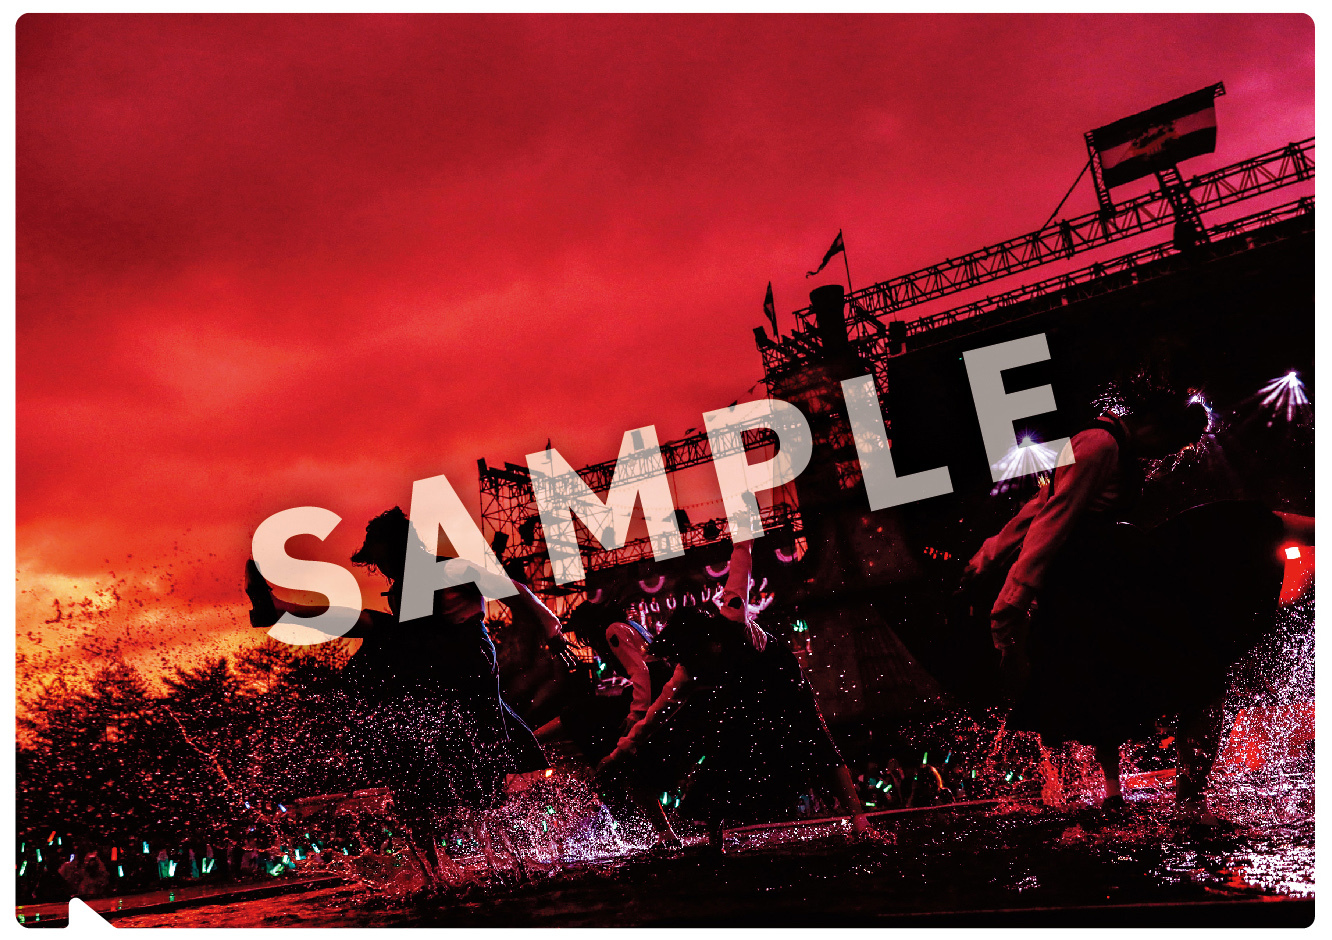 K46_SAMPLE_TSUTAYA